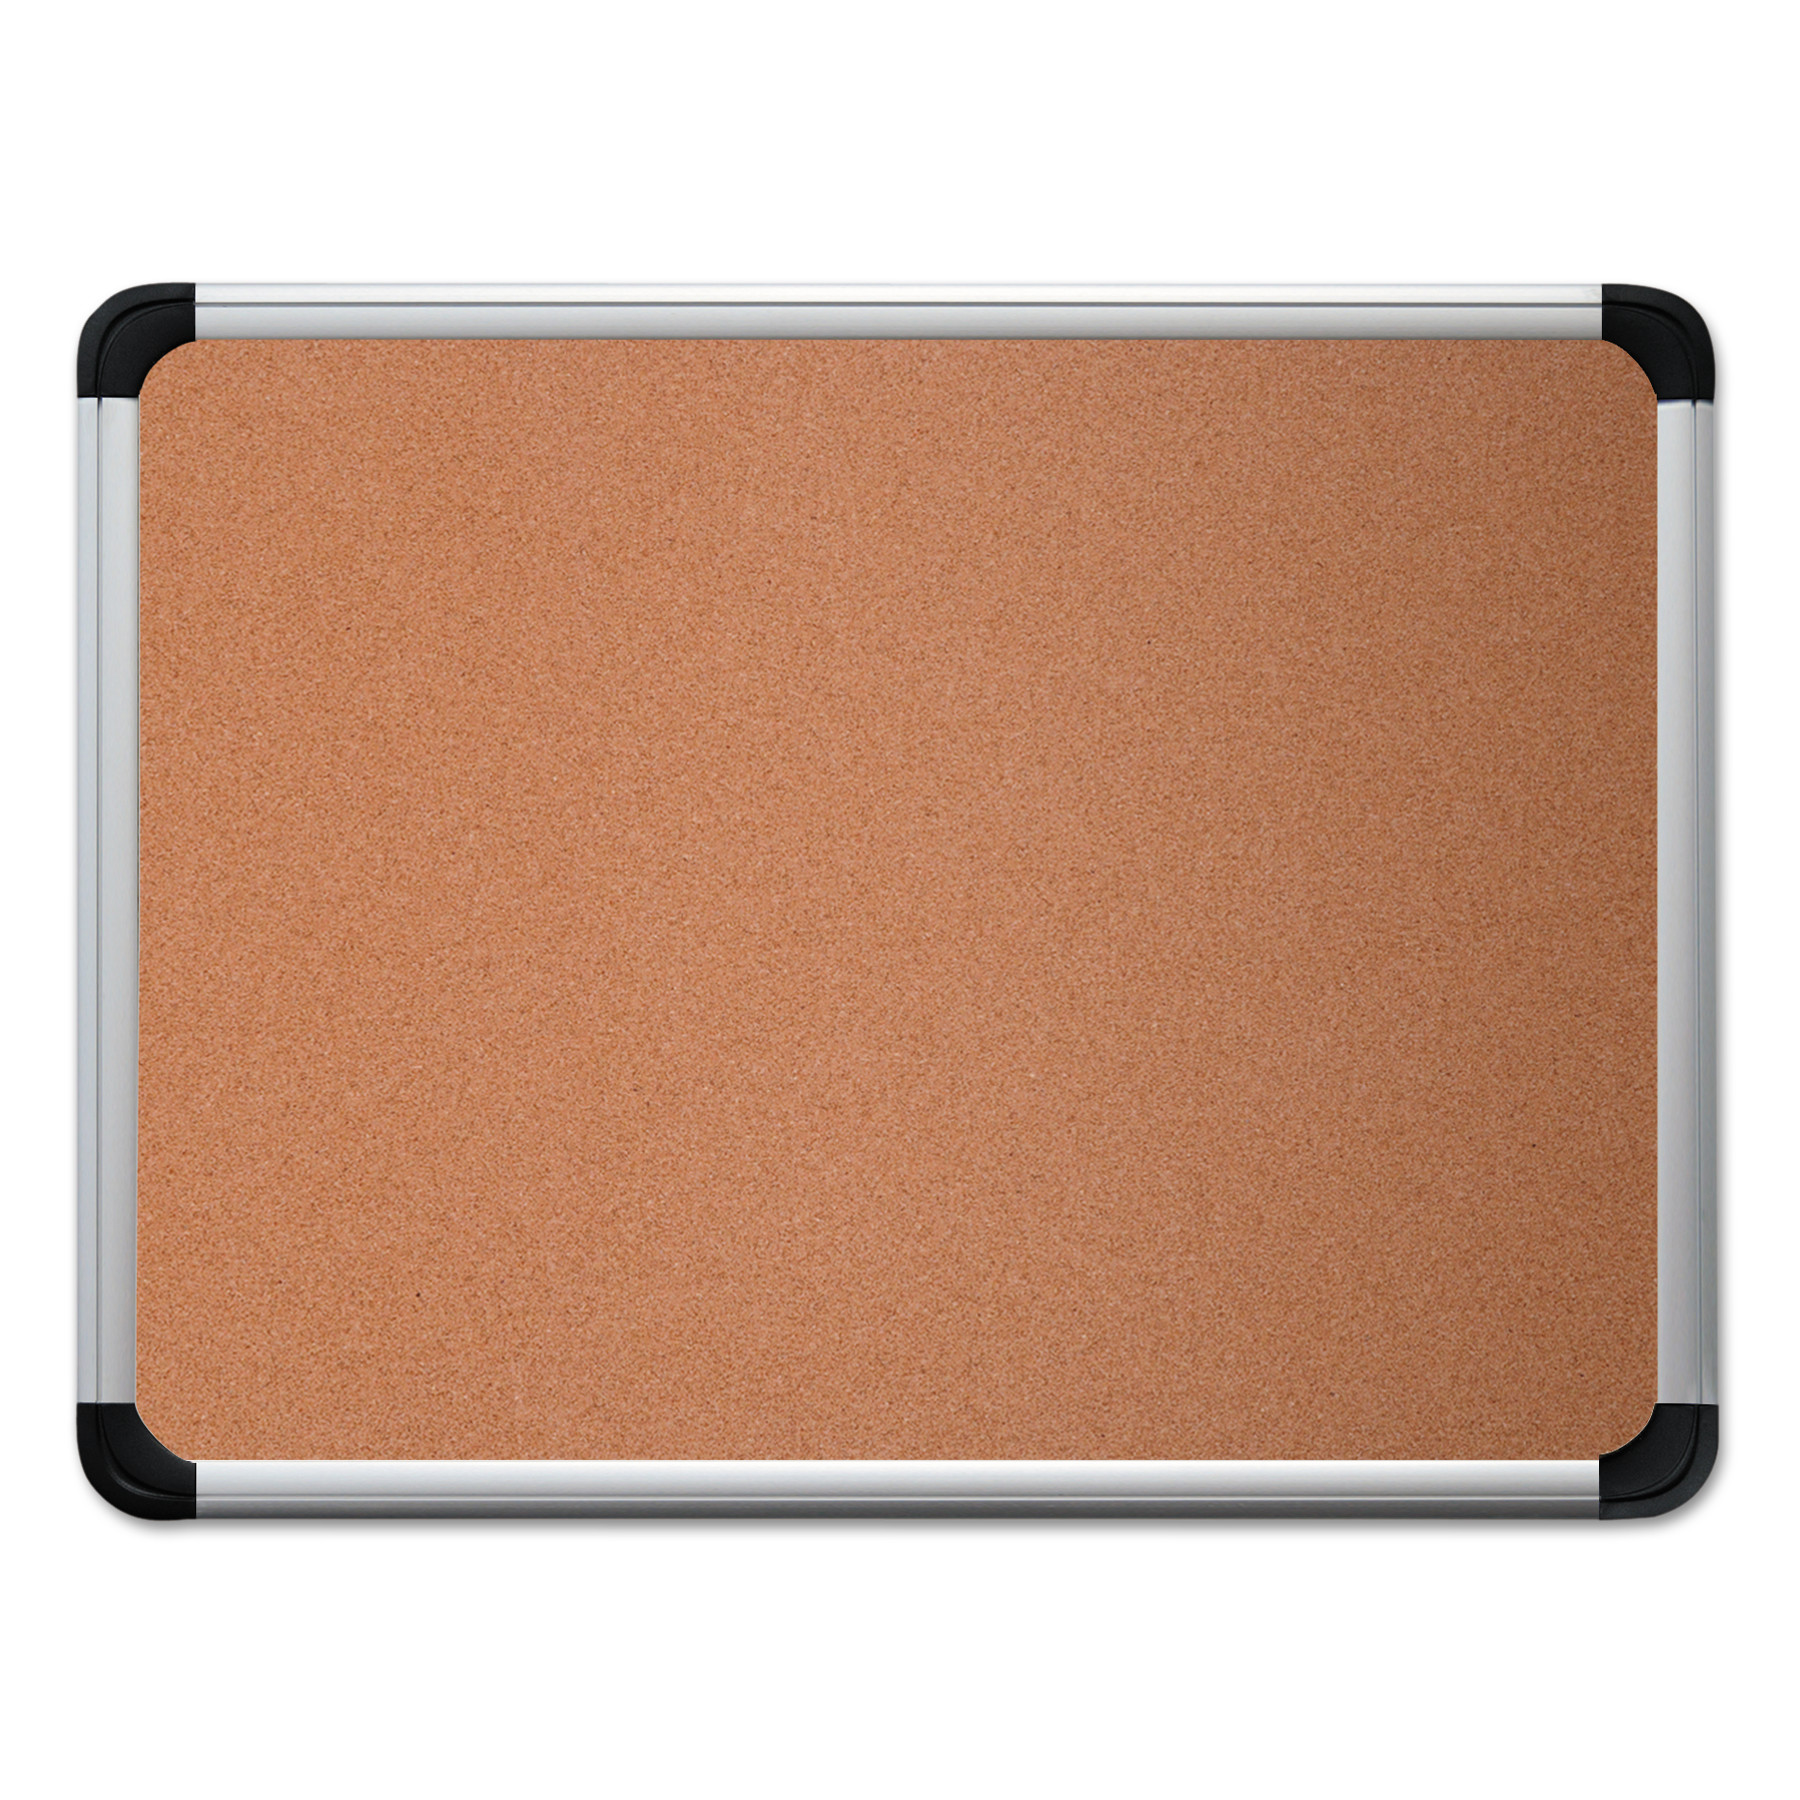 Universal Cork Board with Aluminum Frame, 36 x 24, Natural, Silver Frame -UNV43713